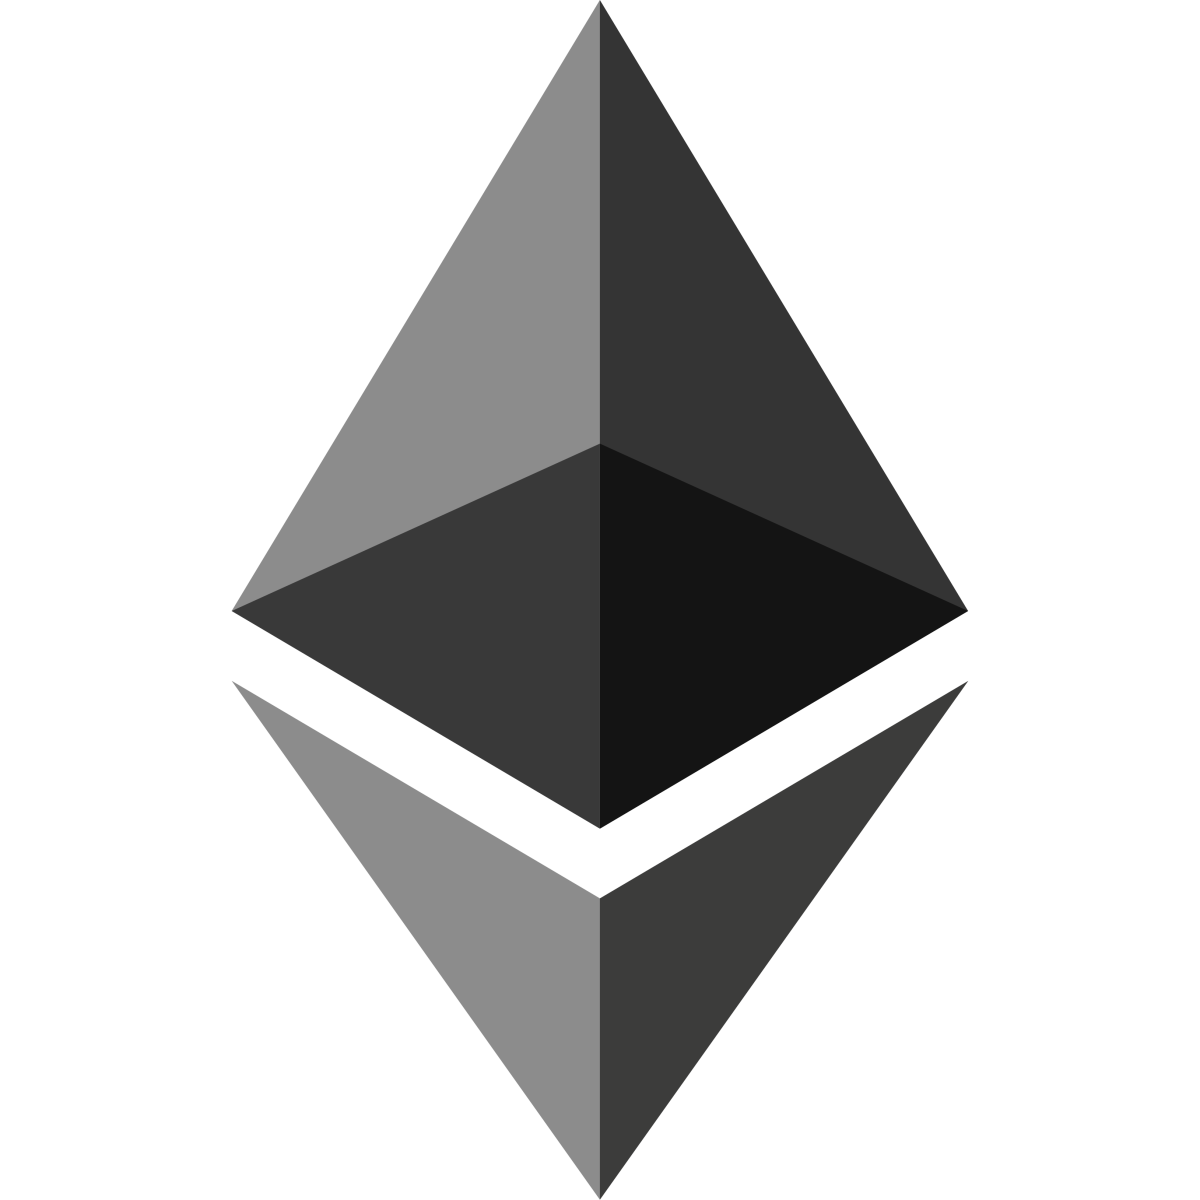 4. Ethereum Transaction Fees Fall To Lowest In 49 Days As DeFi Craze Subsides